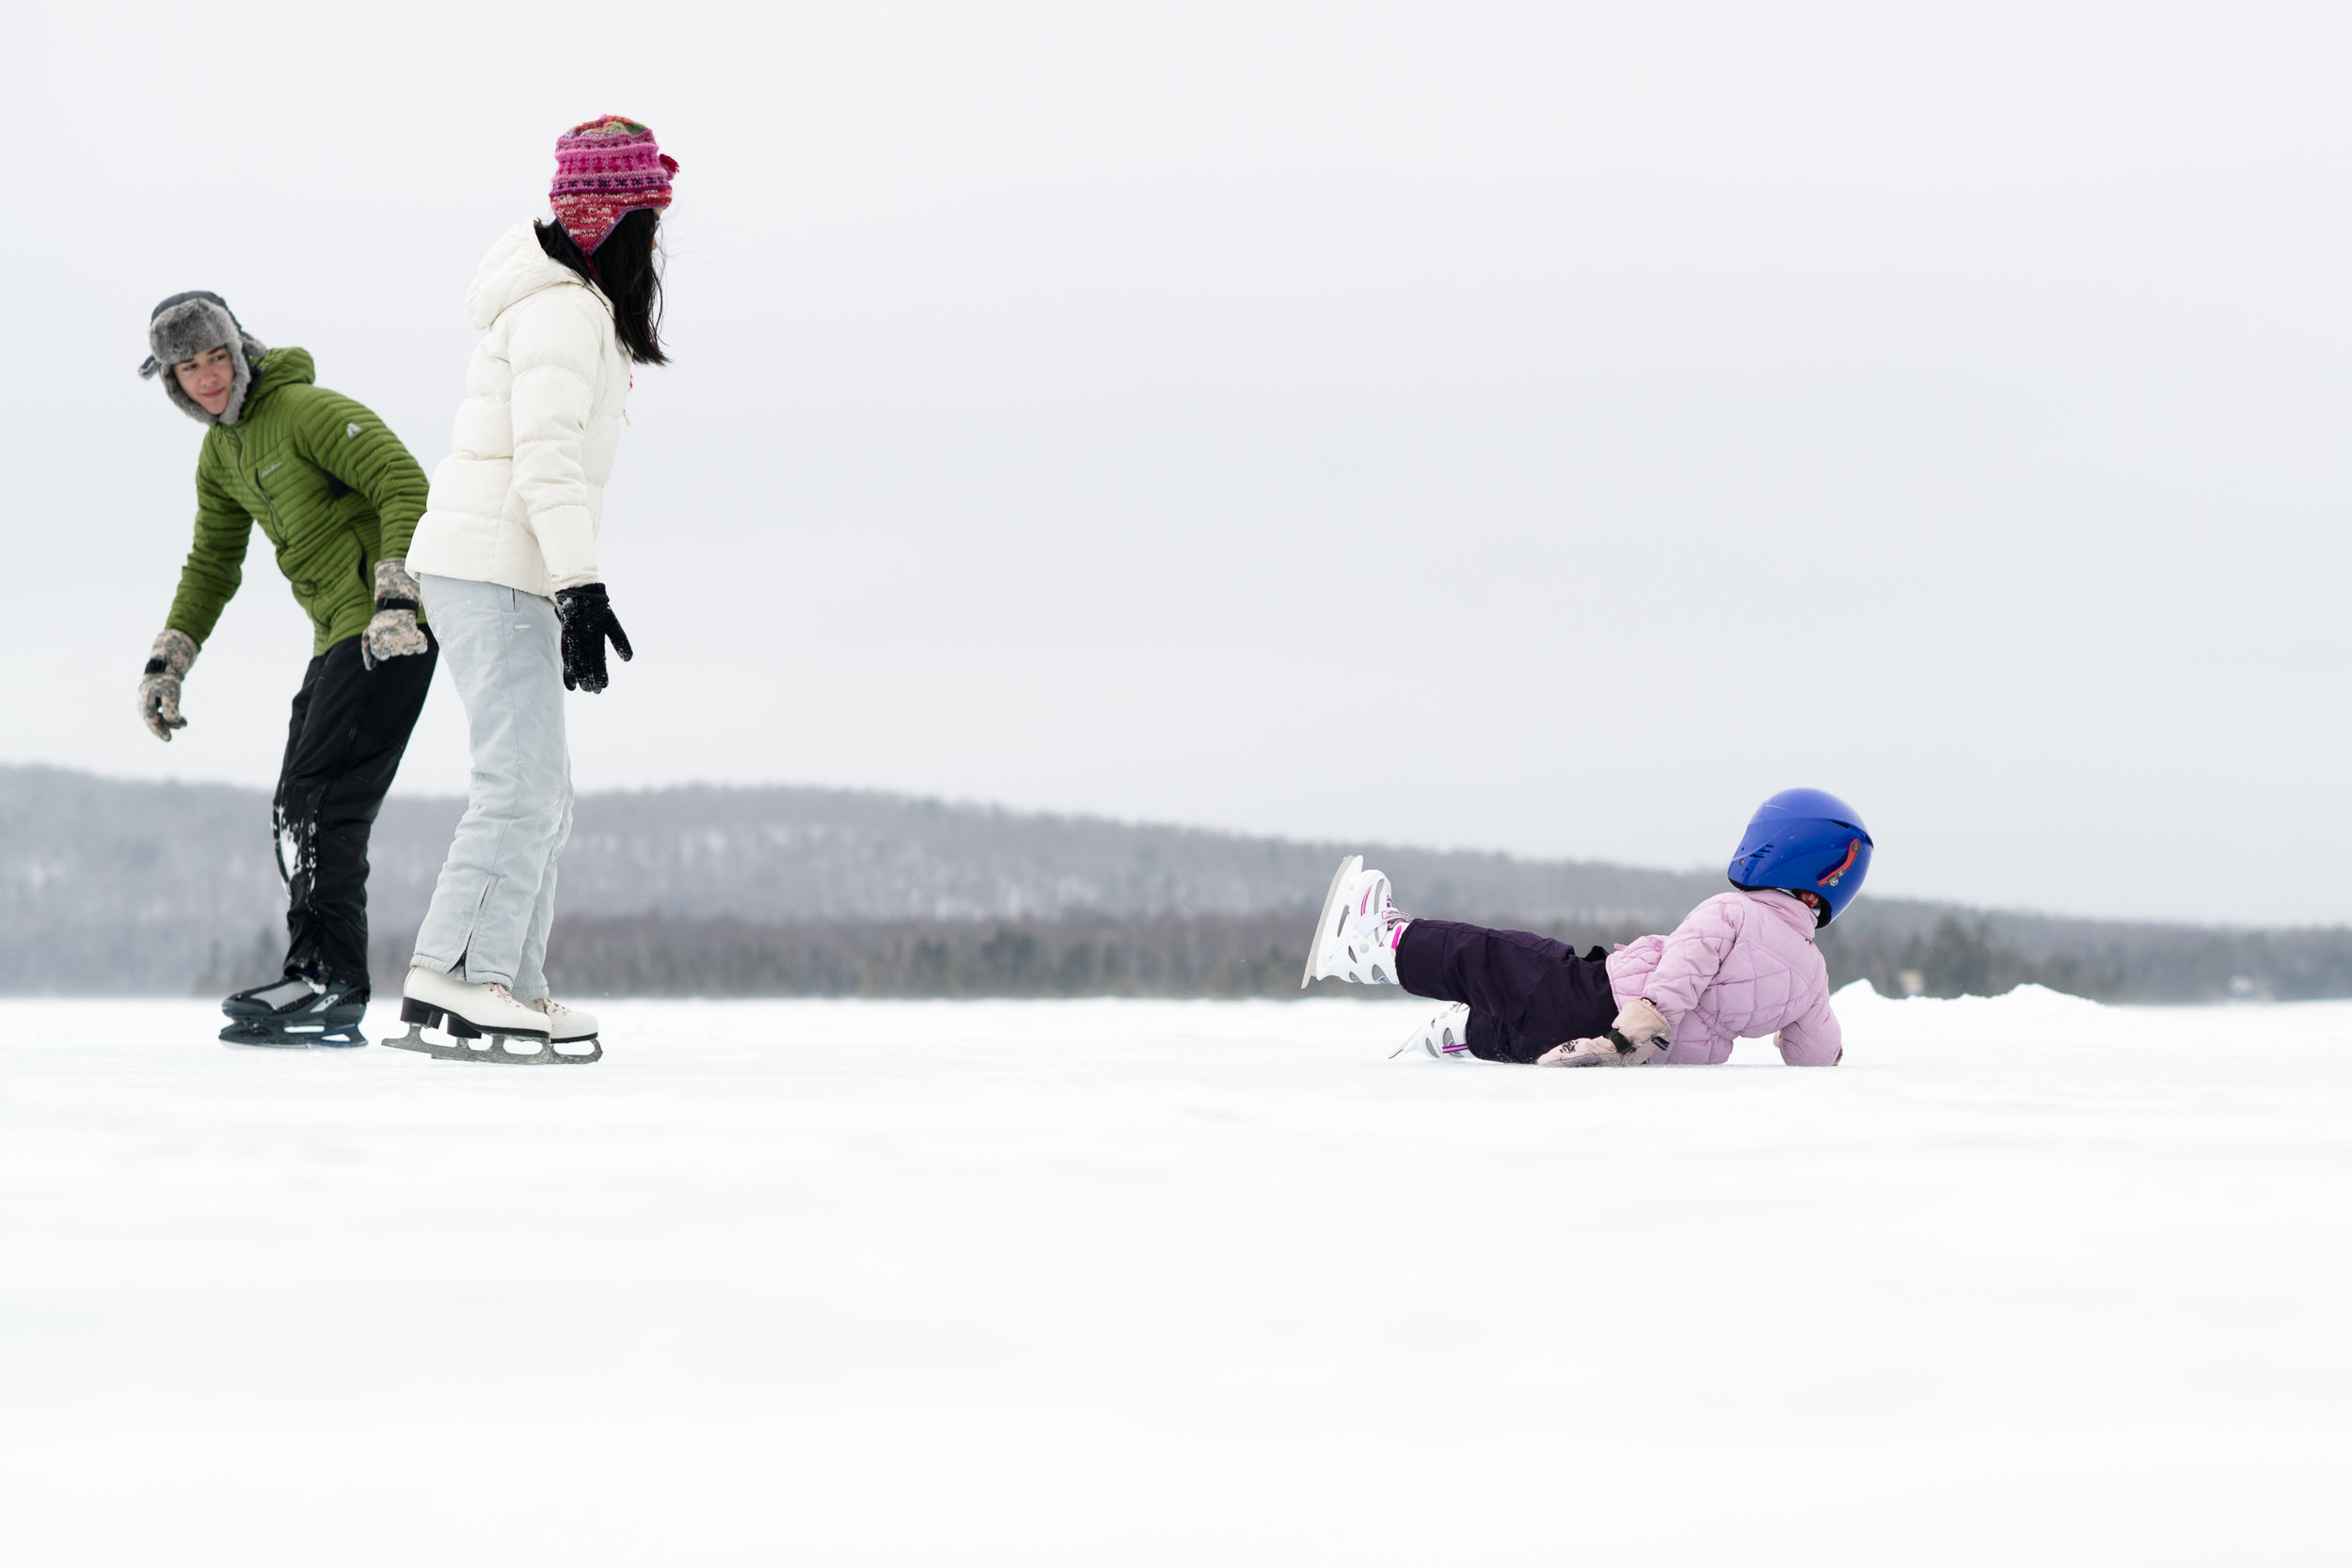 ice-skating-on-rangeley-lake-maine14.jpg